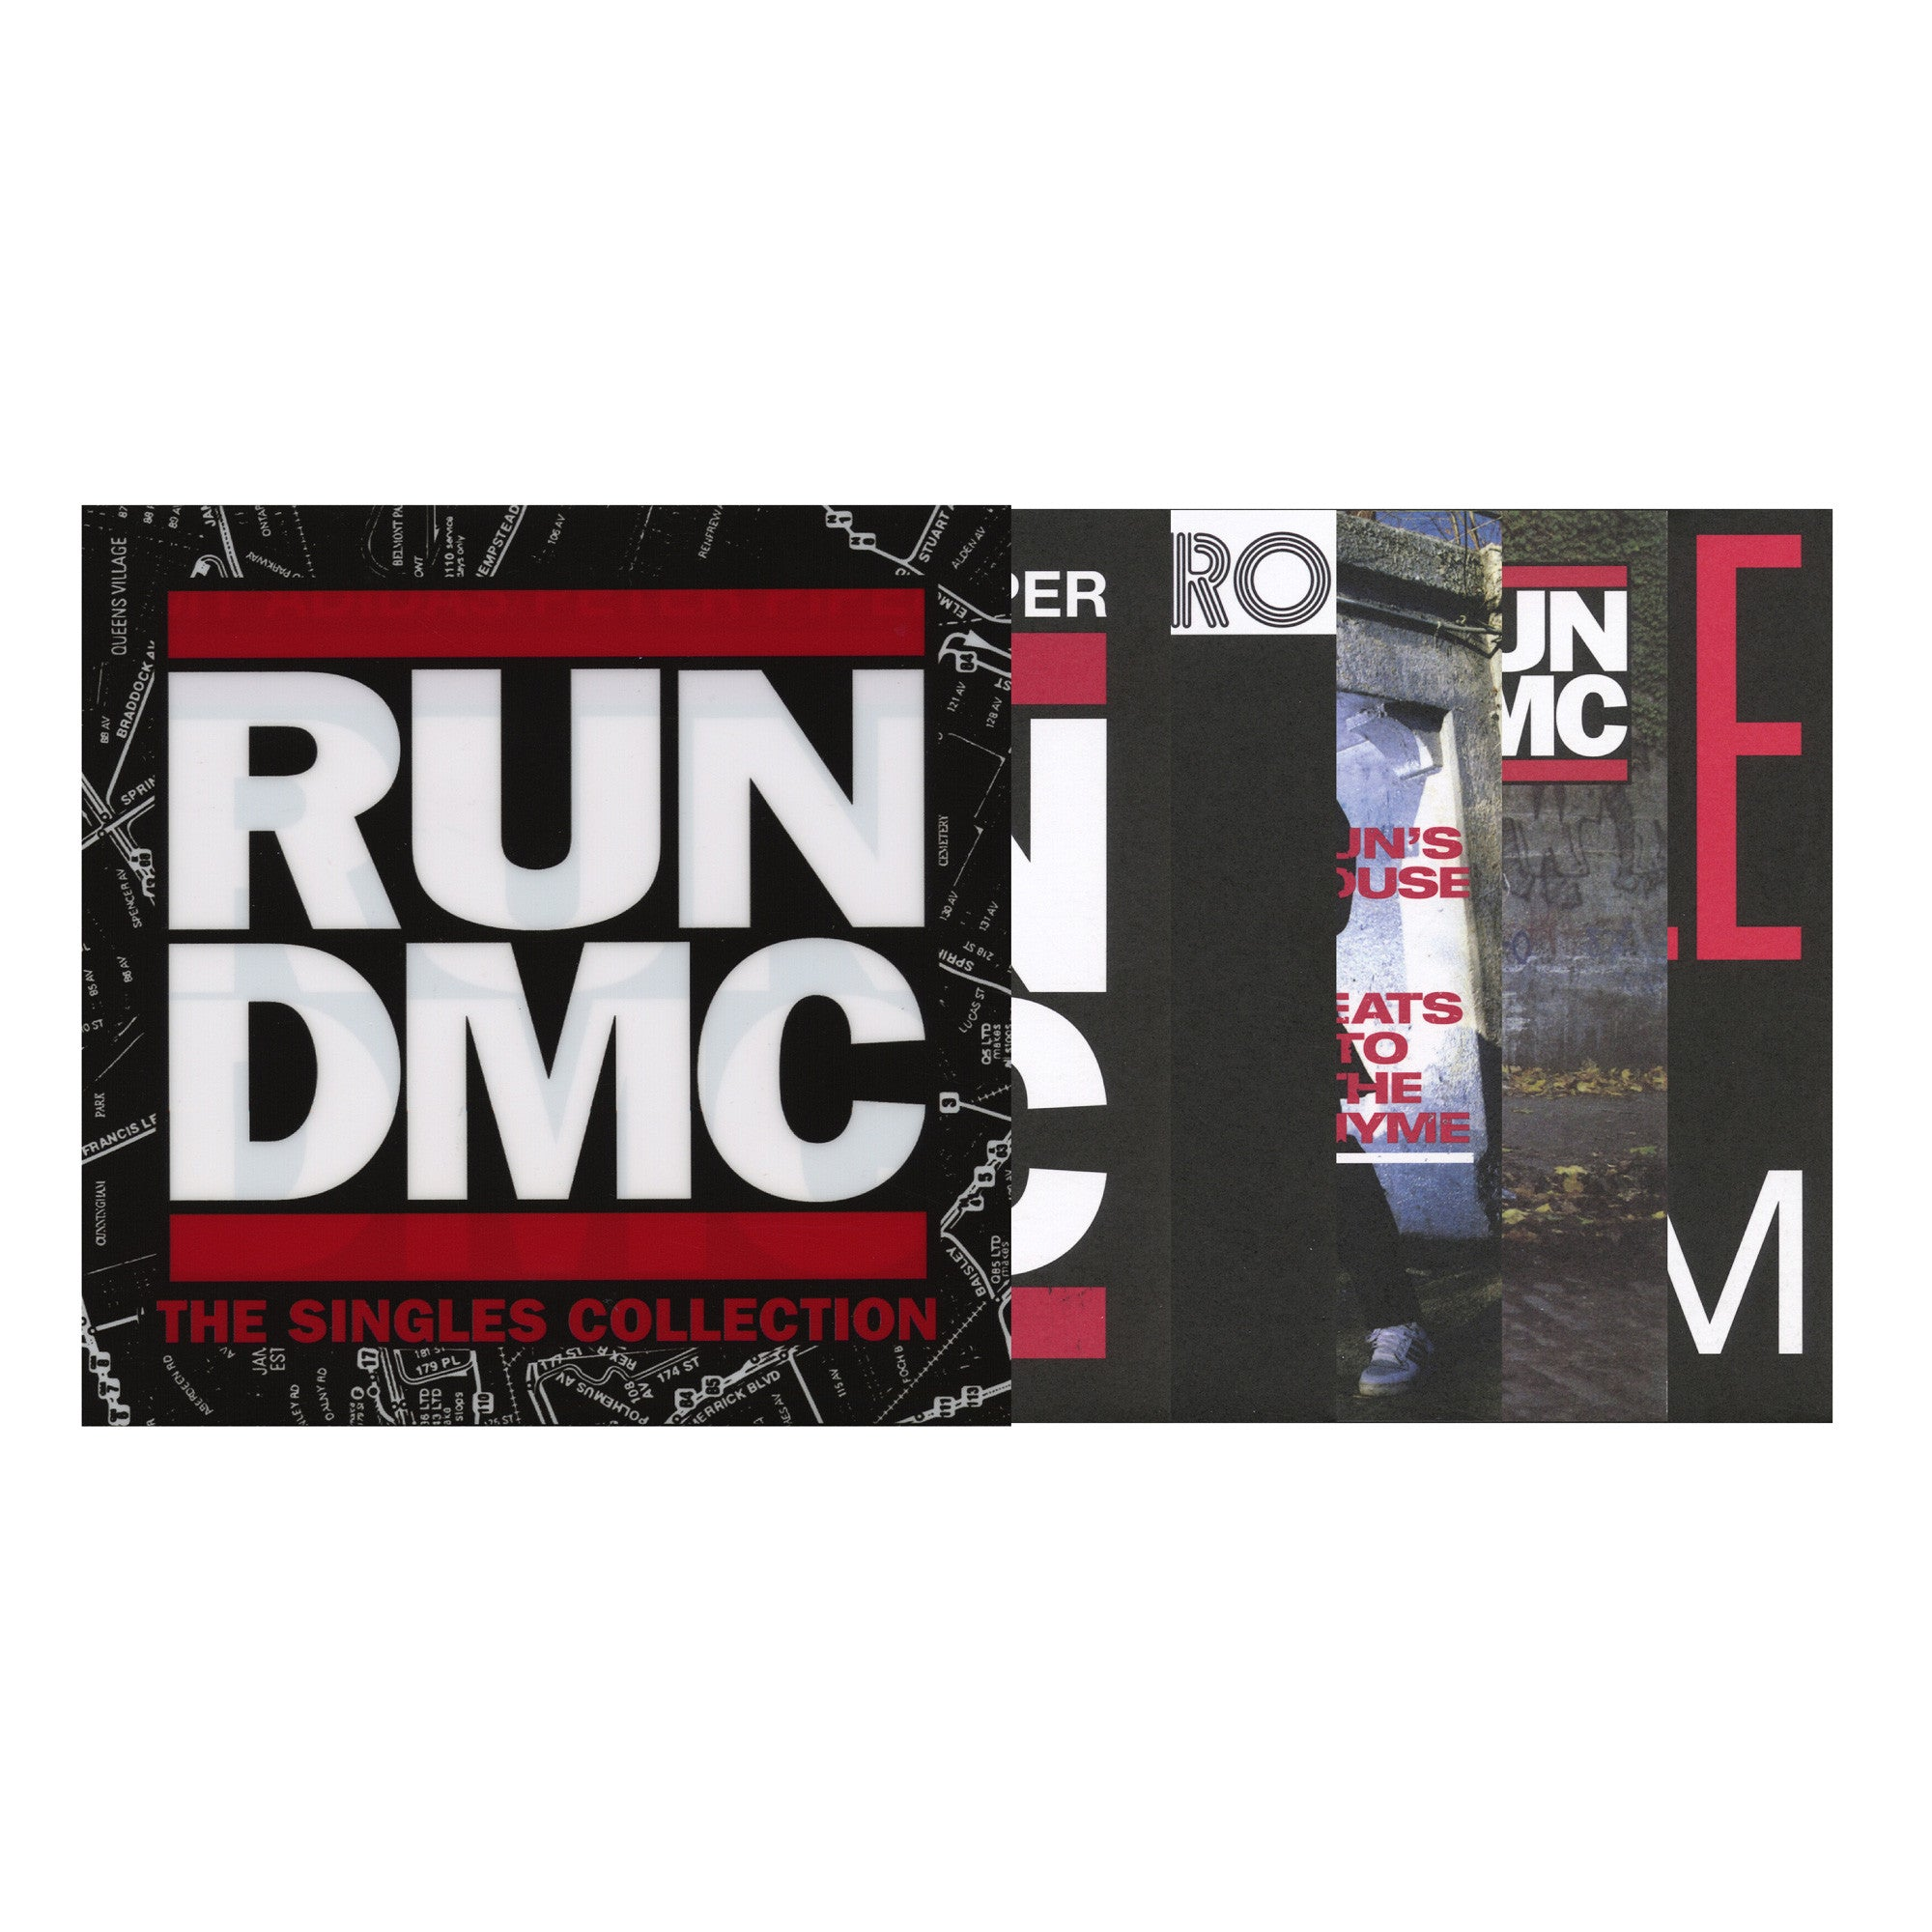 Run DMC - The Singles Collection - The Giant Peach - 1